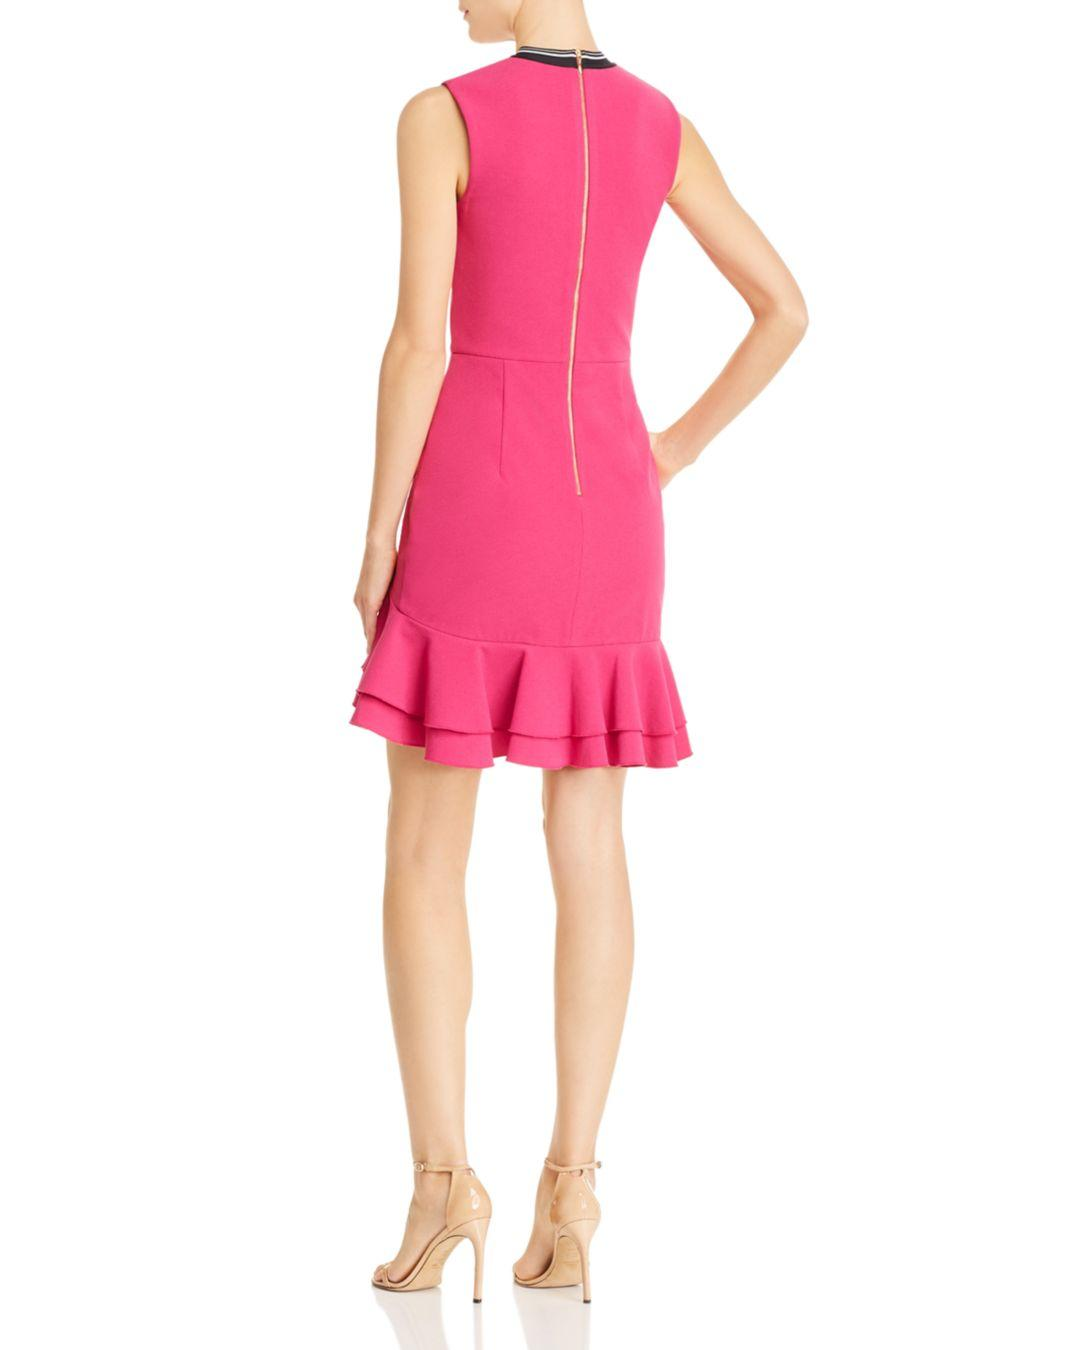 b5c423b2f93 Rebecca Vallance Delilah Ruffled Mini Dress in Pink - Lyst